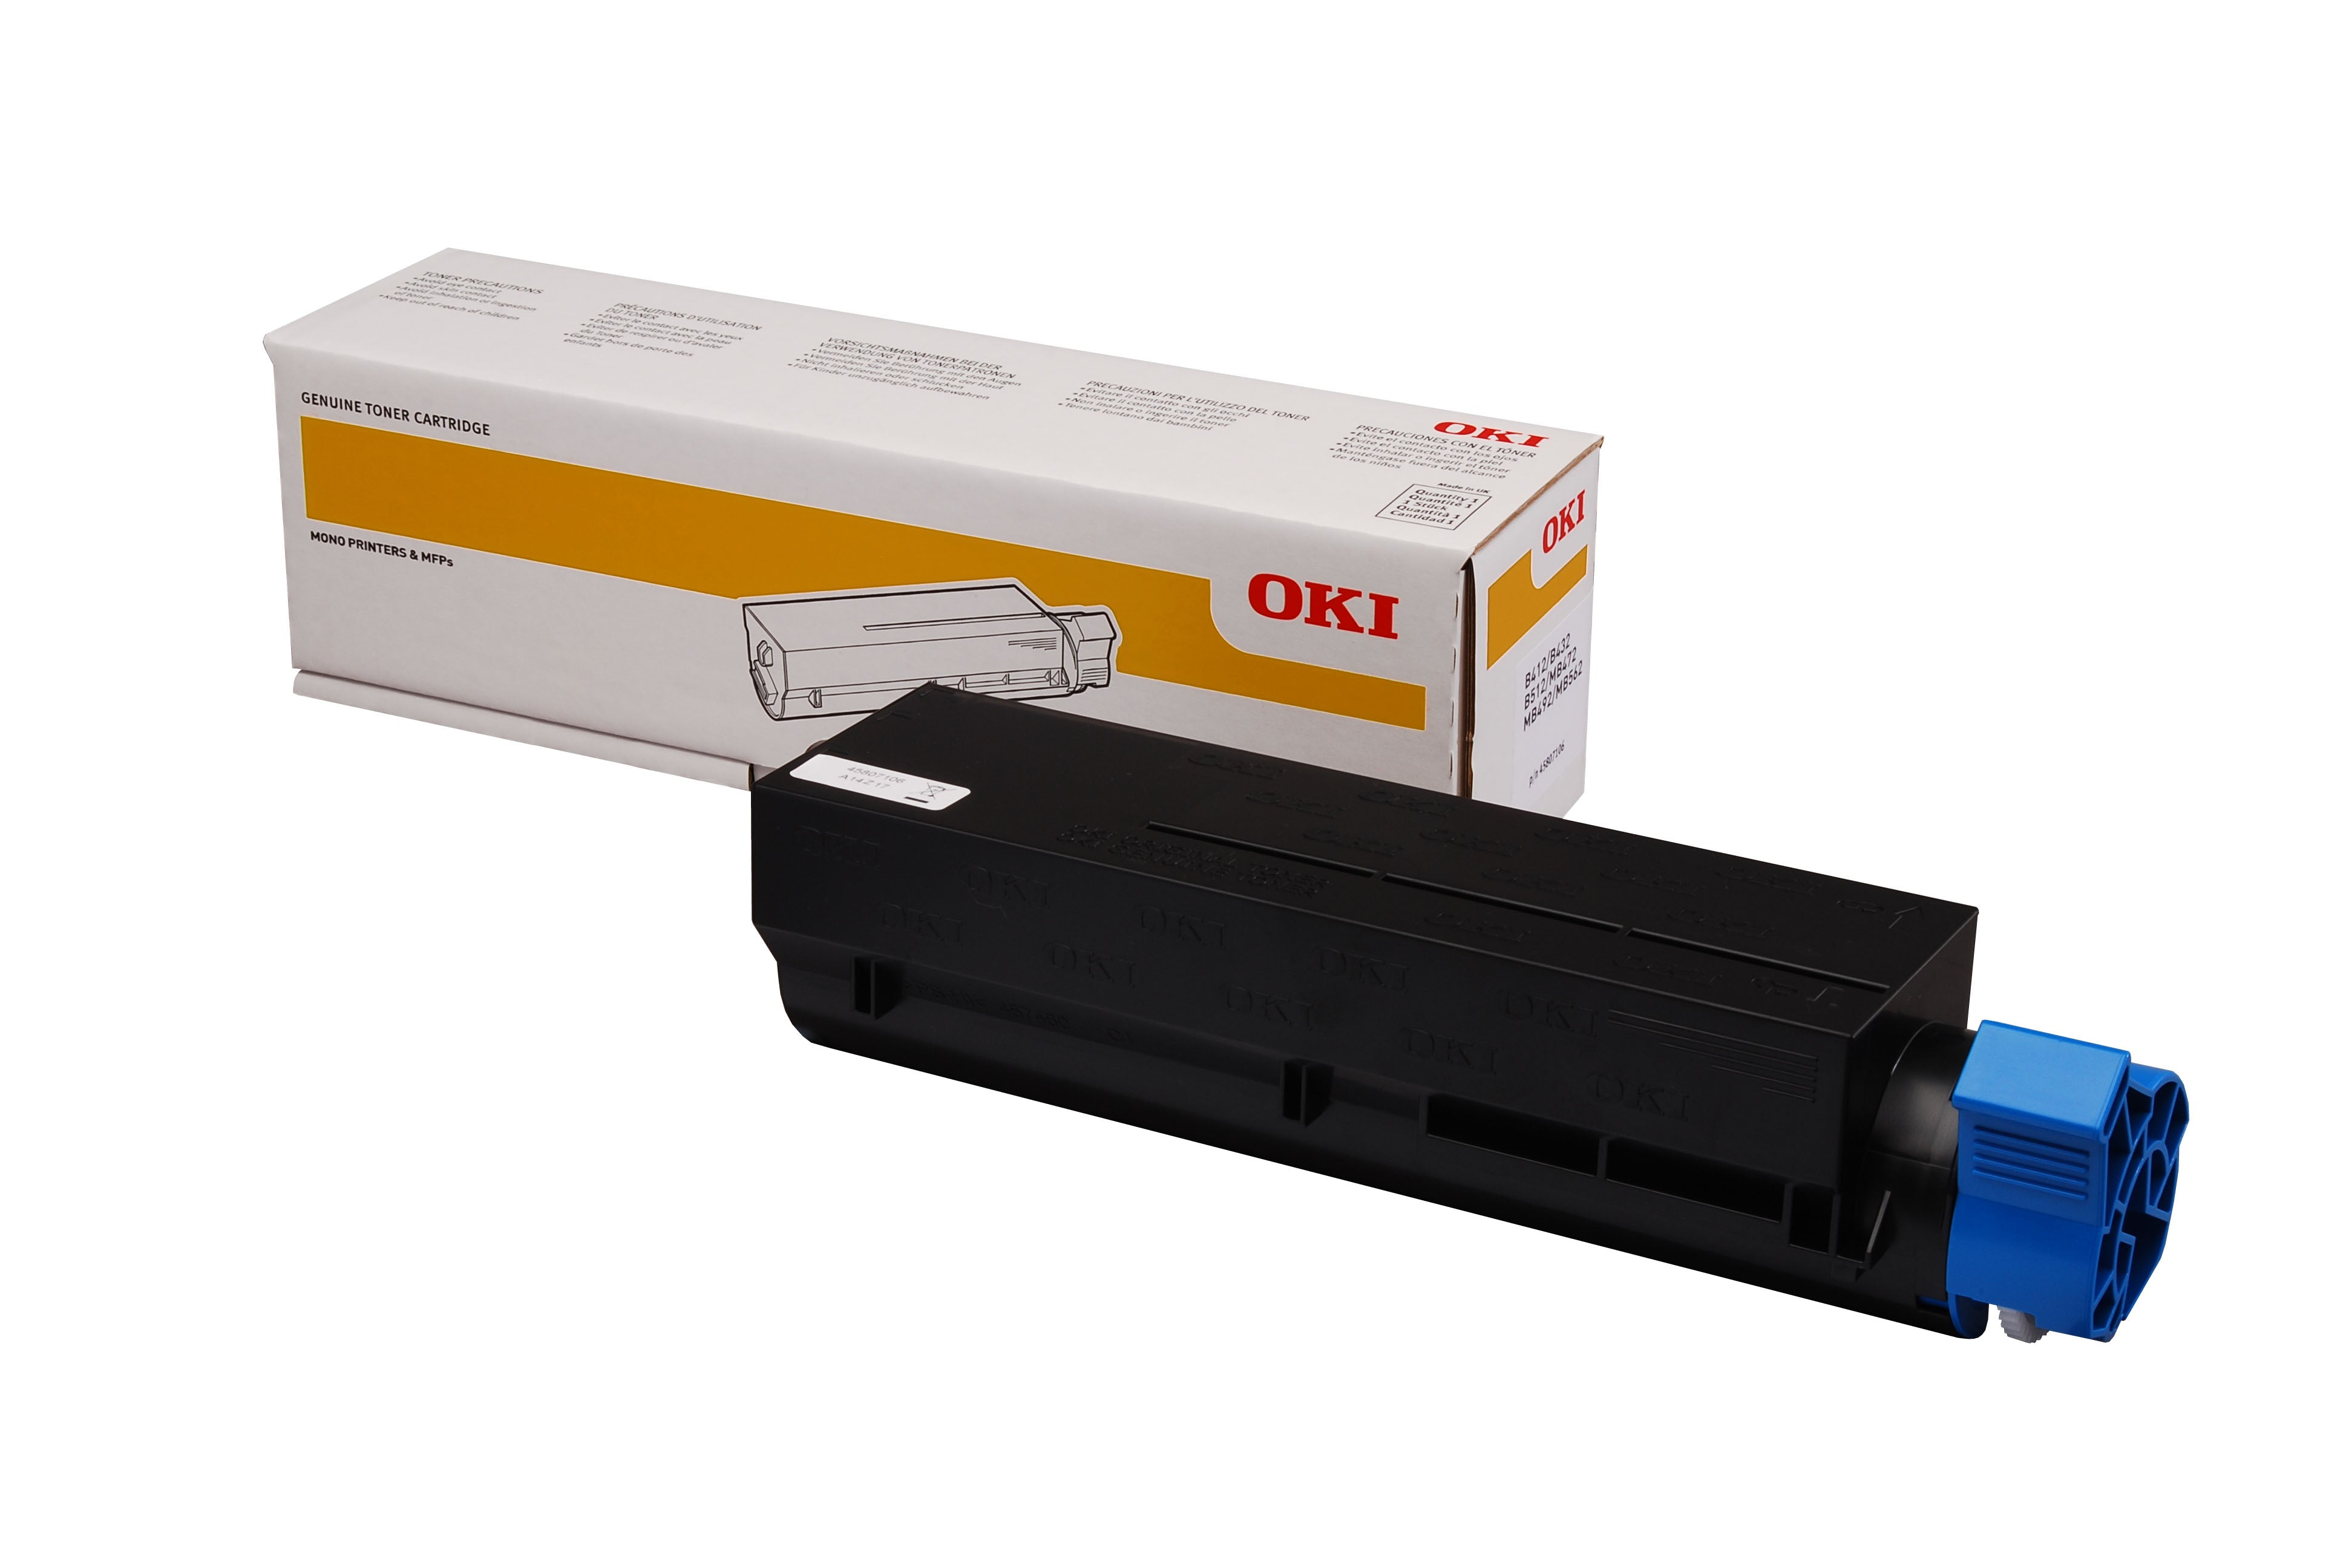 OKI B432dn Black Toner (7,000 Pages) 45807107